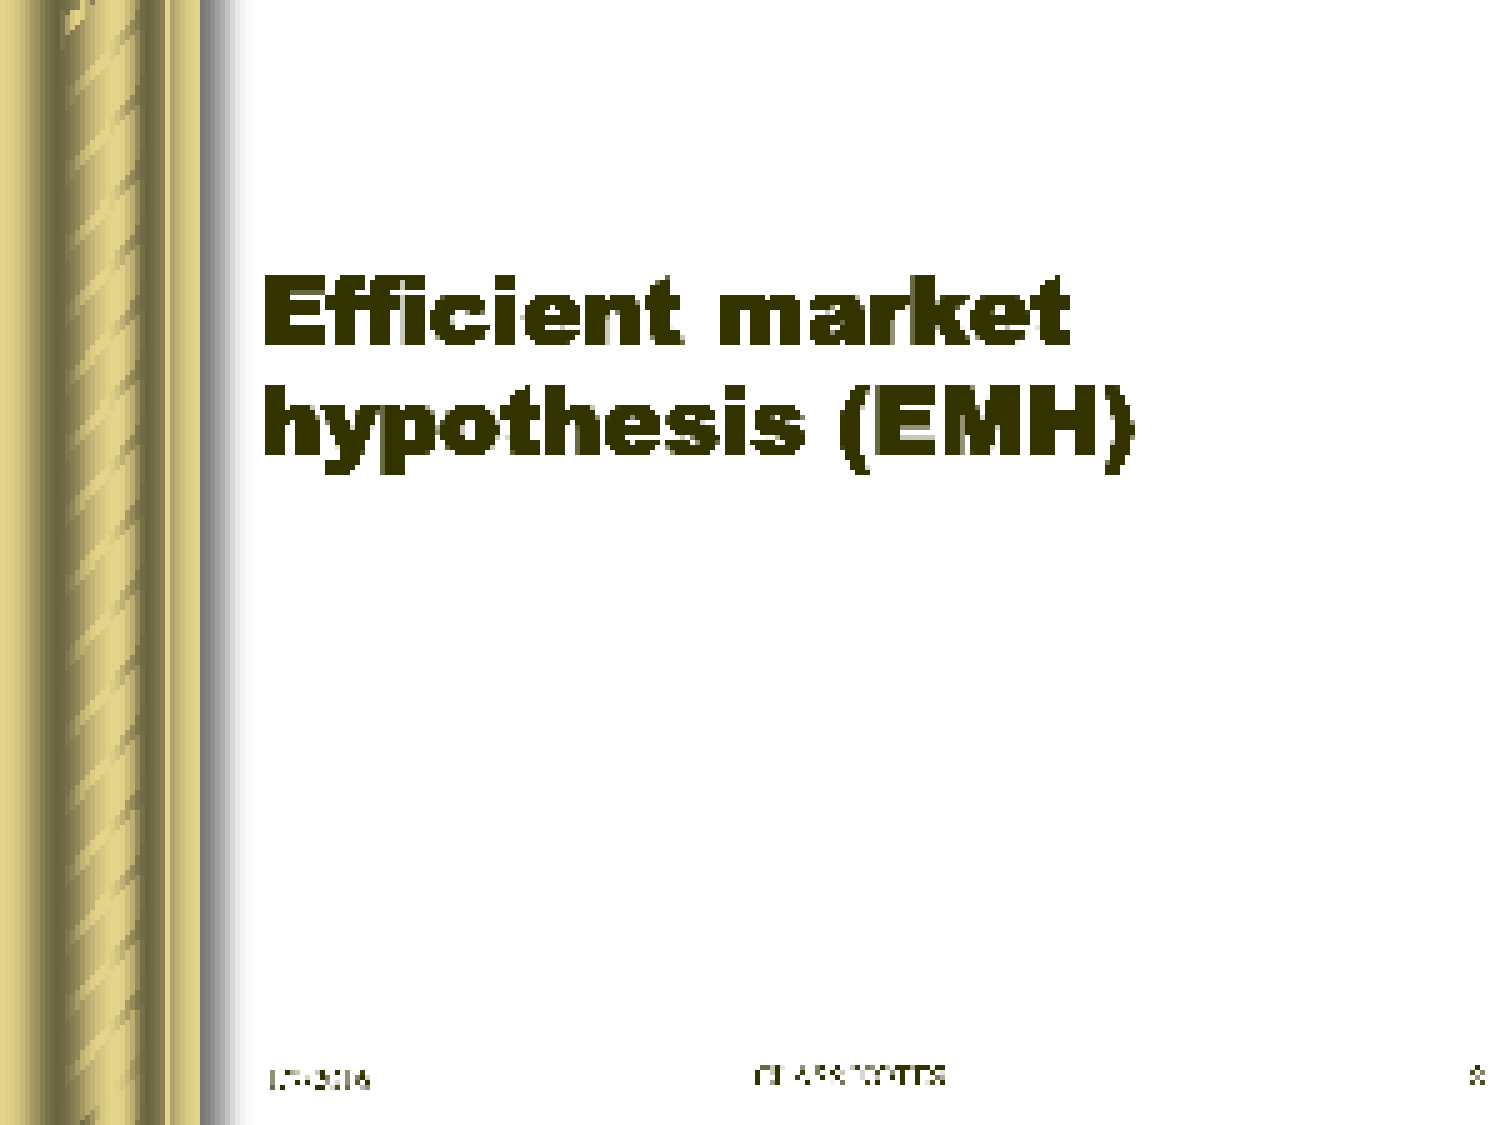 efficient capital markets a review of theory Journal of finance, 25 (1970) (2), 383-417 (also see review of part ii) related evidence reconciling efficient markets with behavioral finance: the adaptive markets hypothesis by andrew w lo - march, 2005.